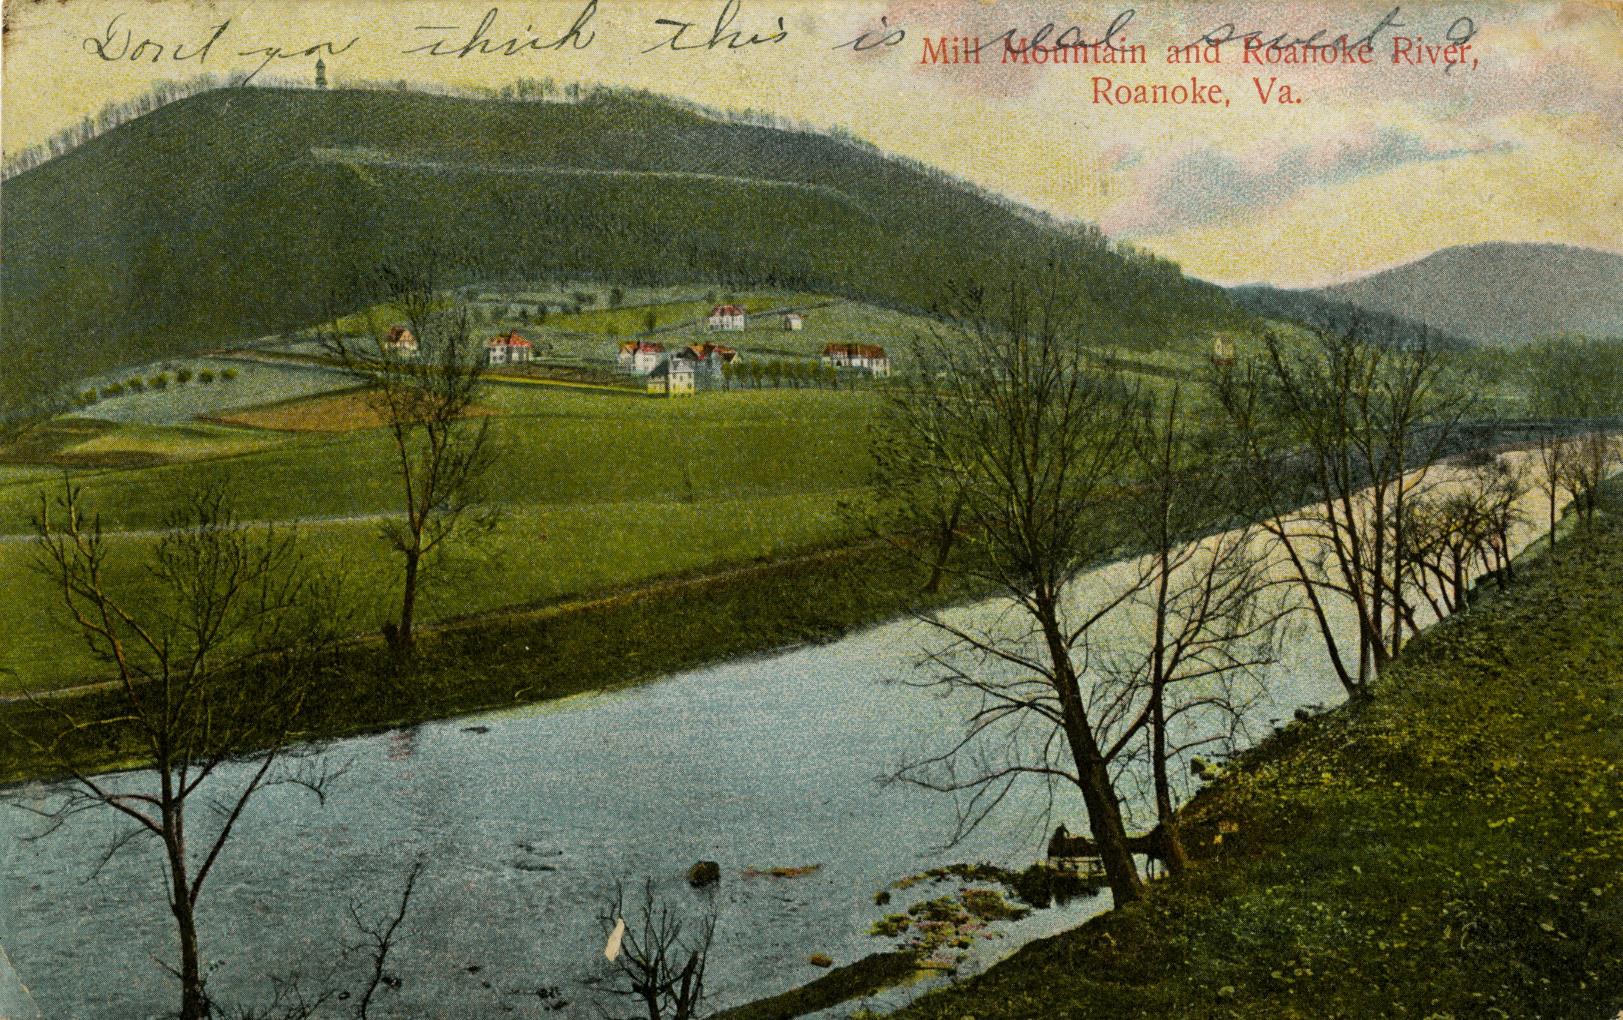 Mill Mountain and Roanoke River1